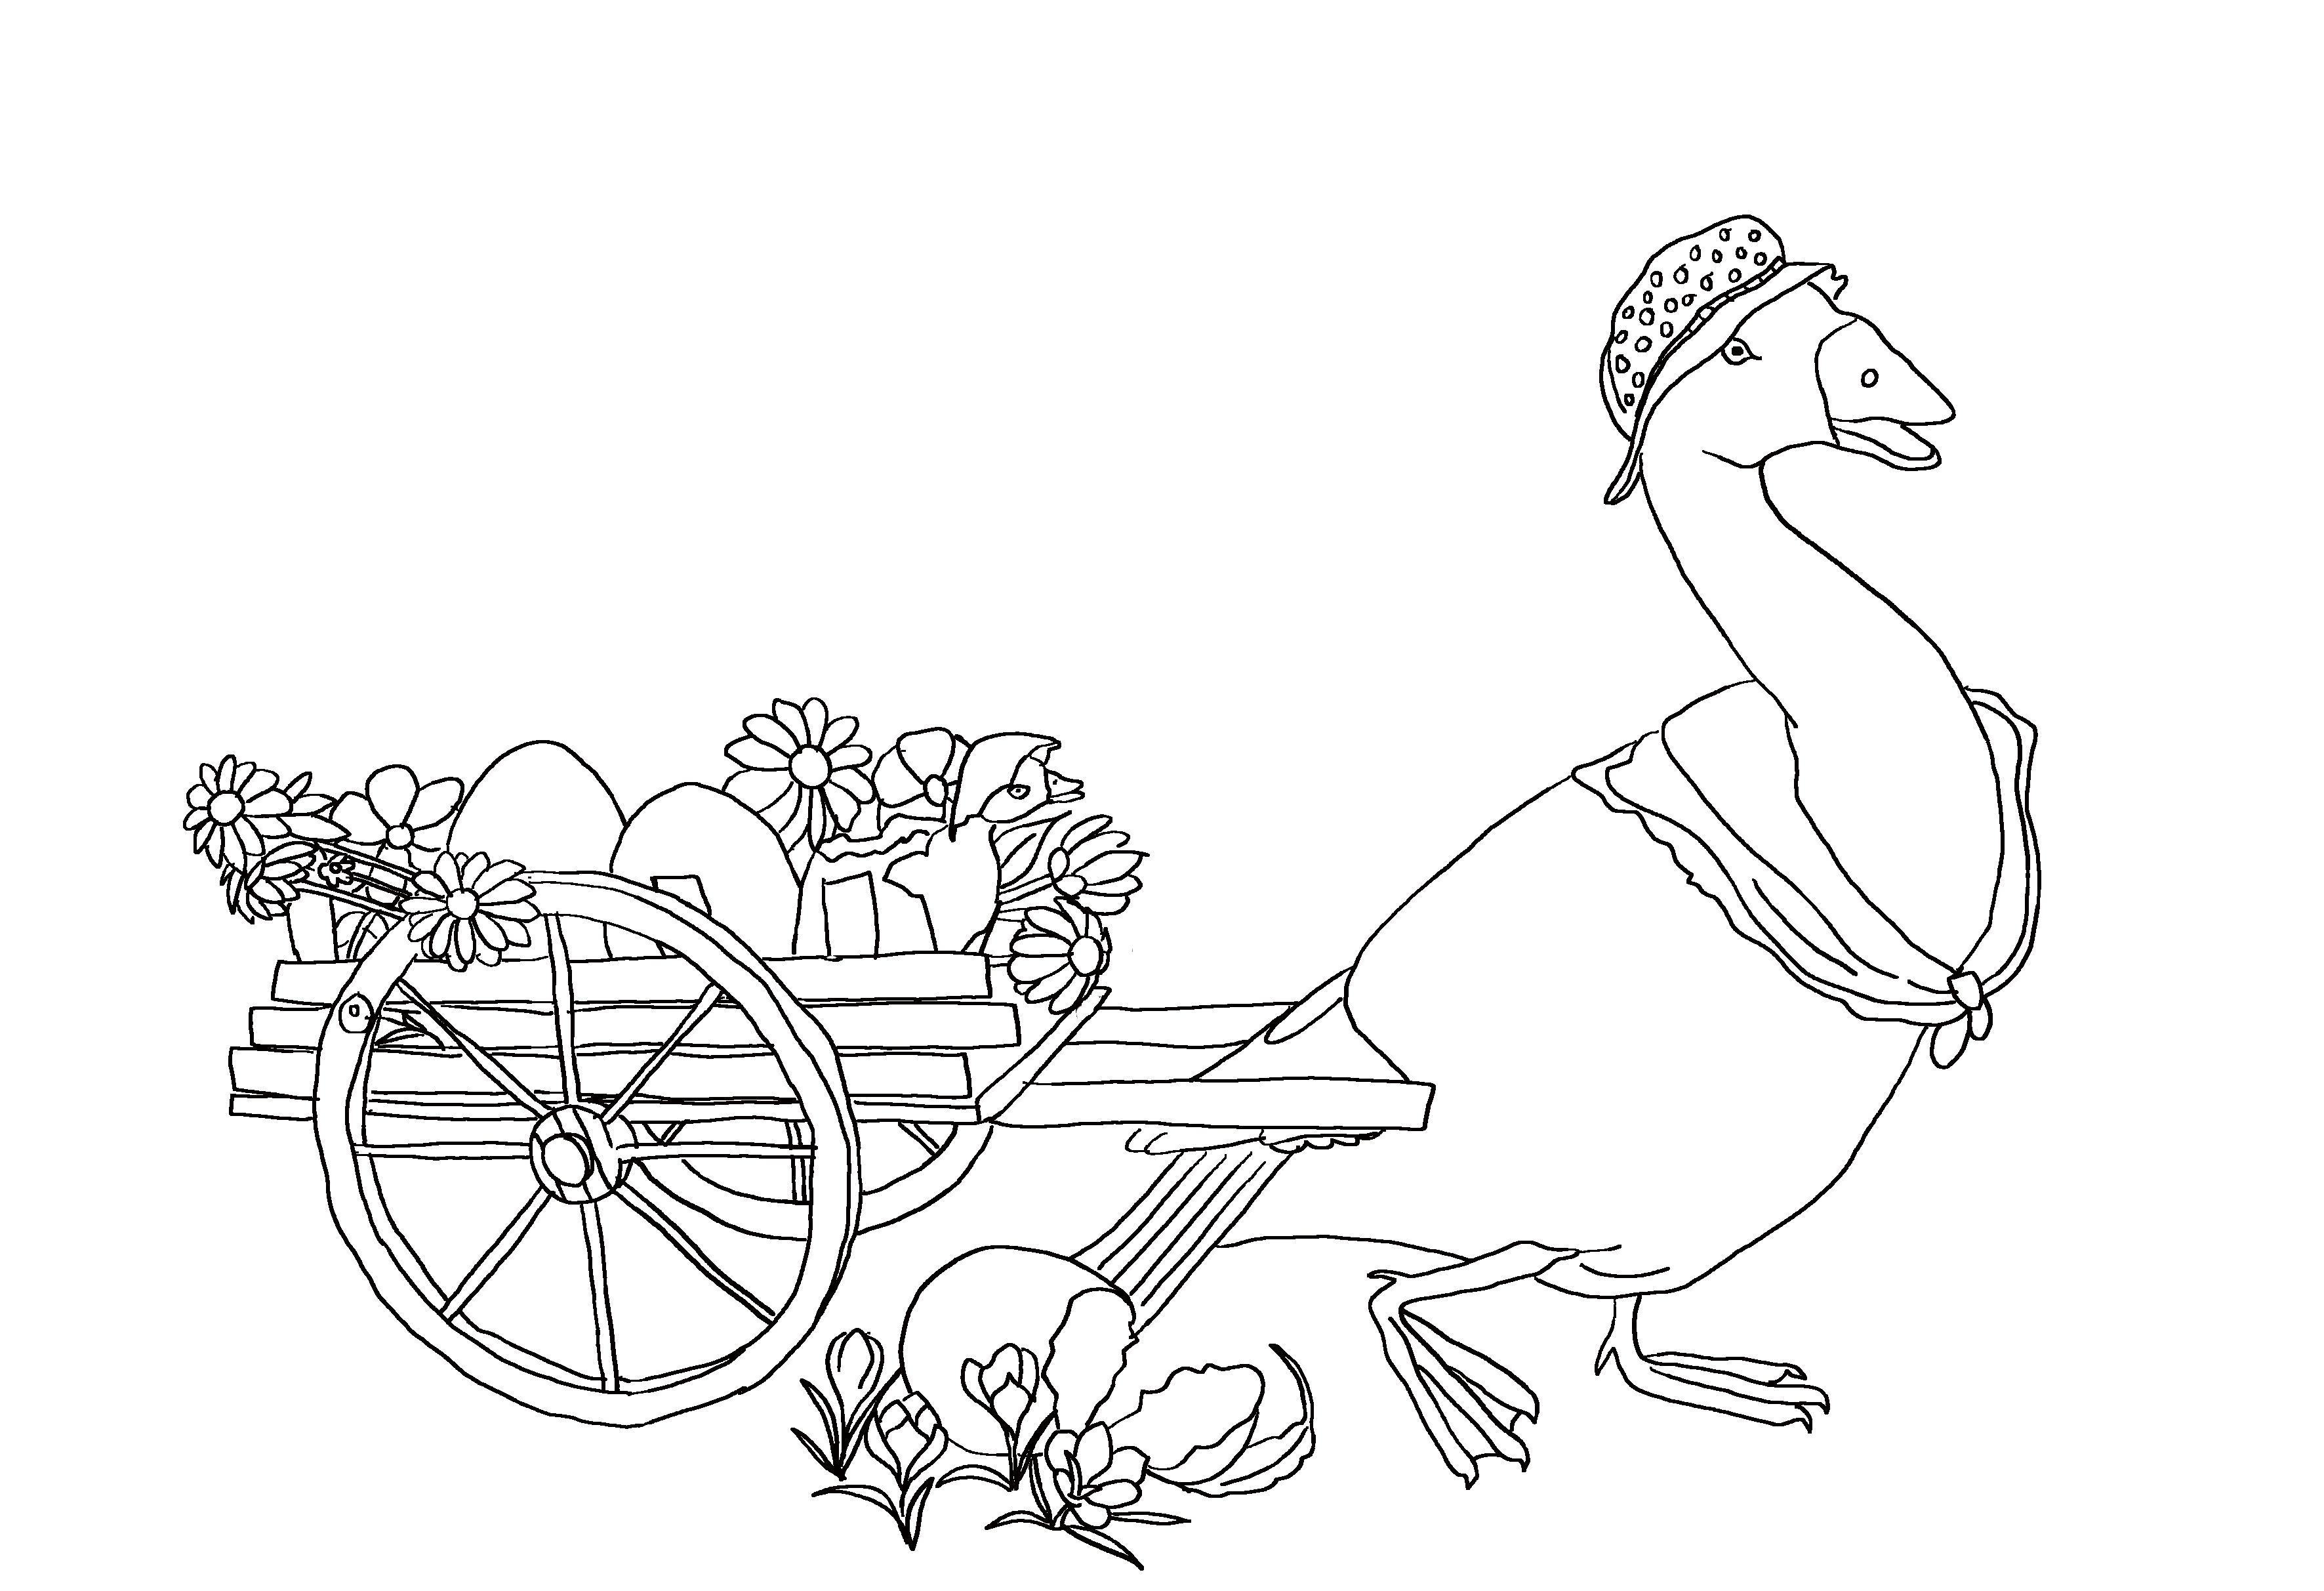 Easter coloring page with Mother goose pulling a cart with Easter eggs.